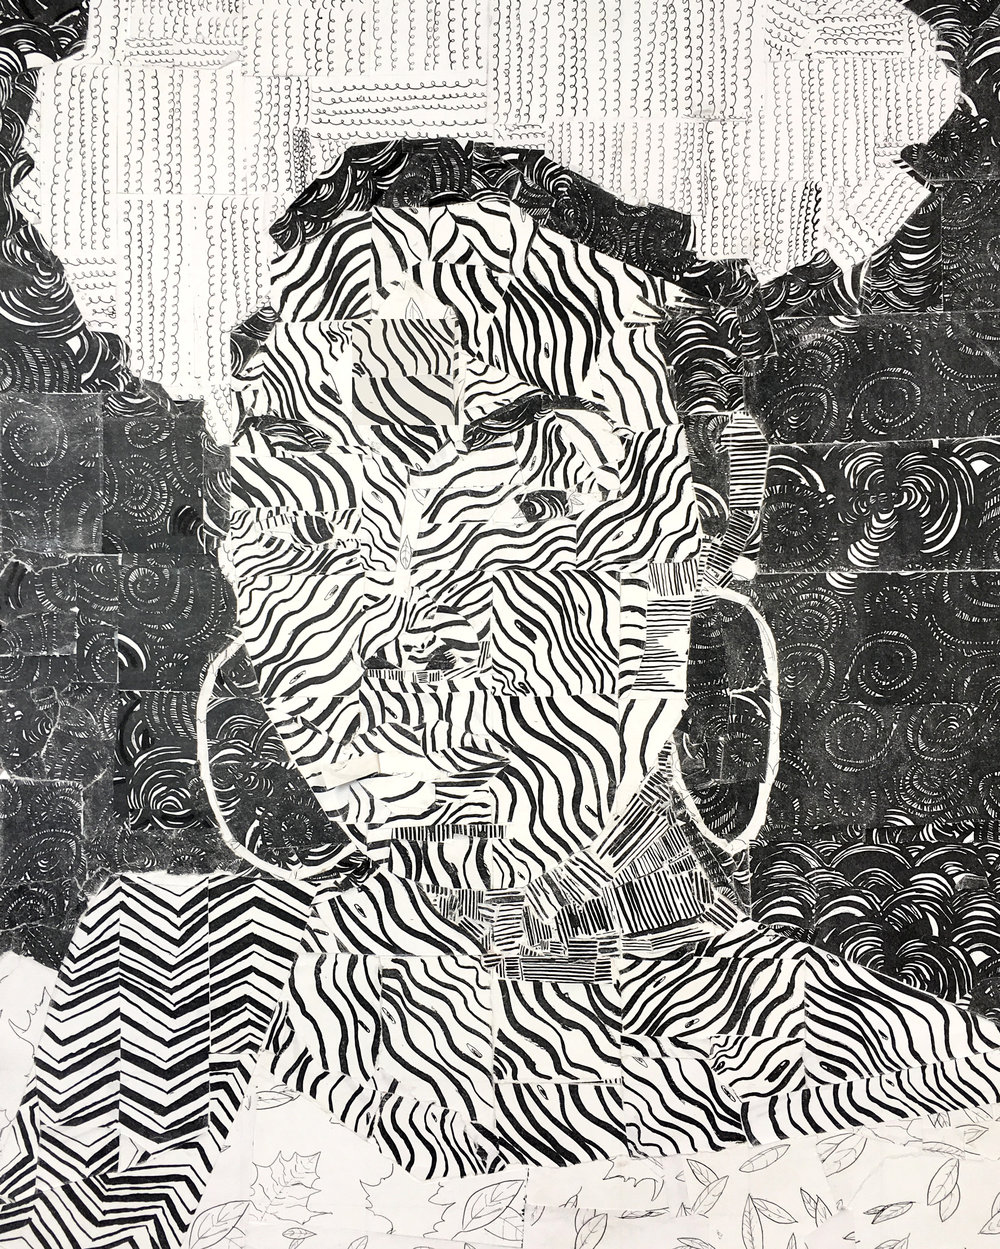 """Drawing 1 ART1620 – Mark Making Self-Portrait Collage, xeroxed copies of drawings, 25"""" x 18"""" 2018"""